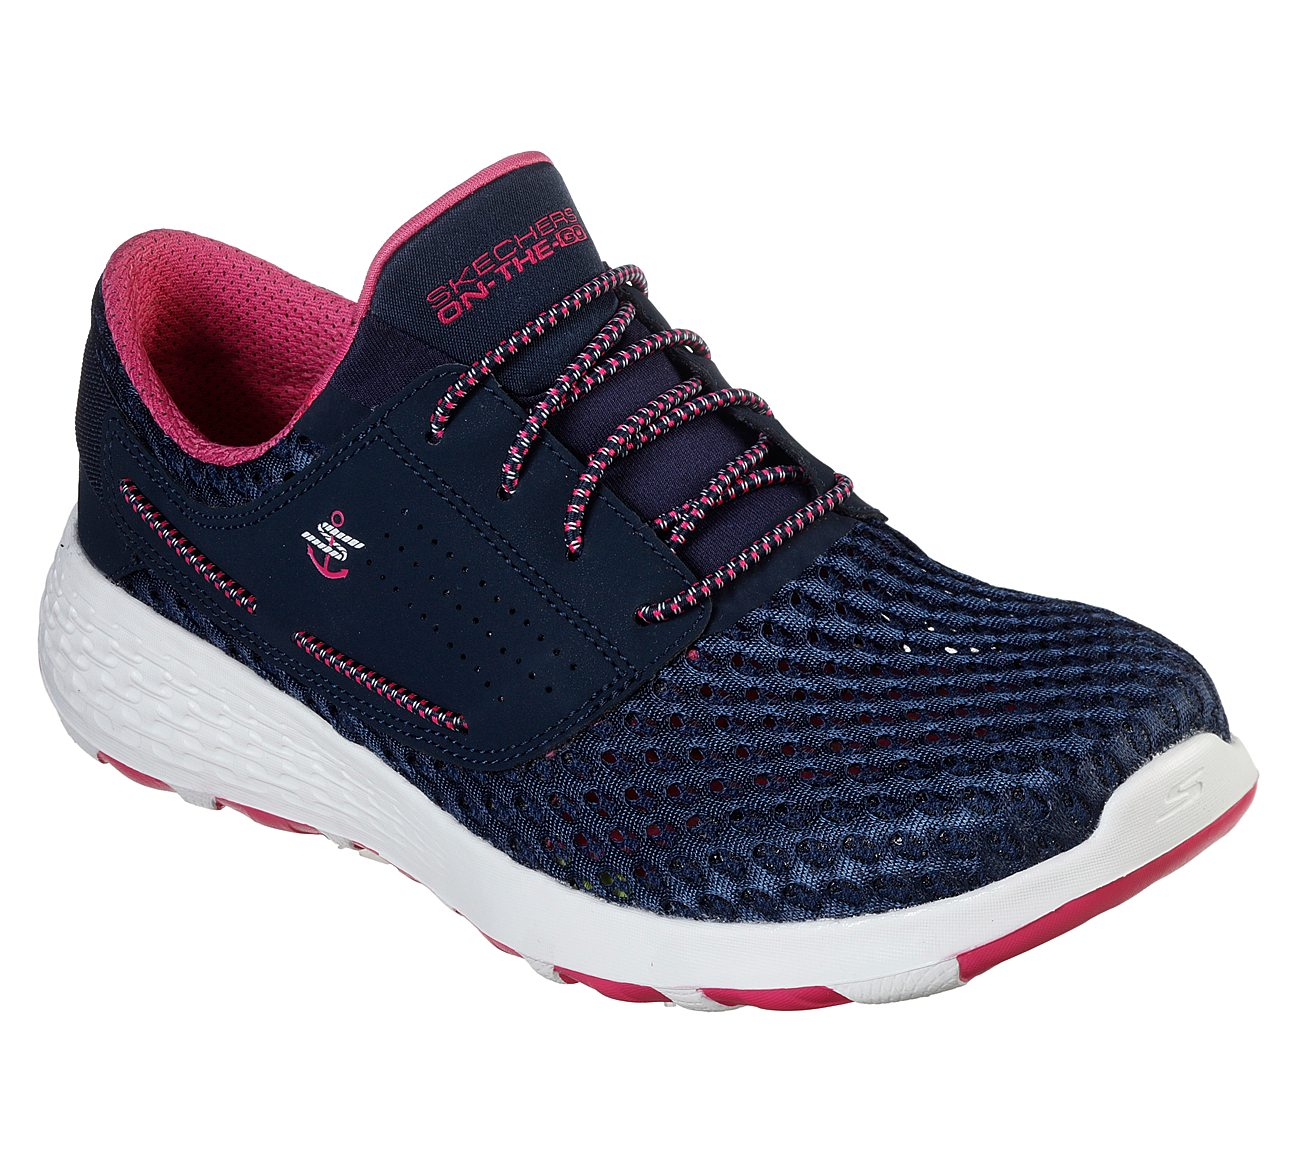 Skechers On the GO Boat Cool - Breezy